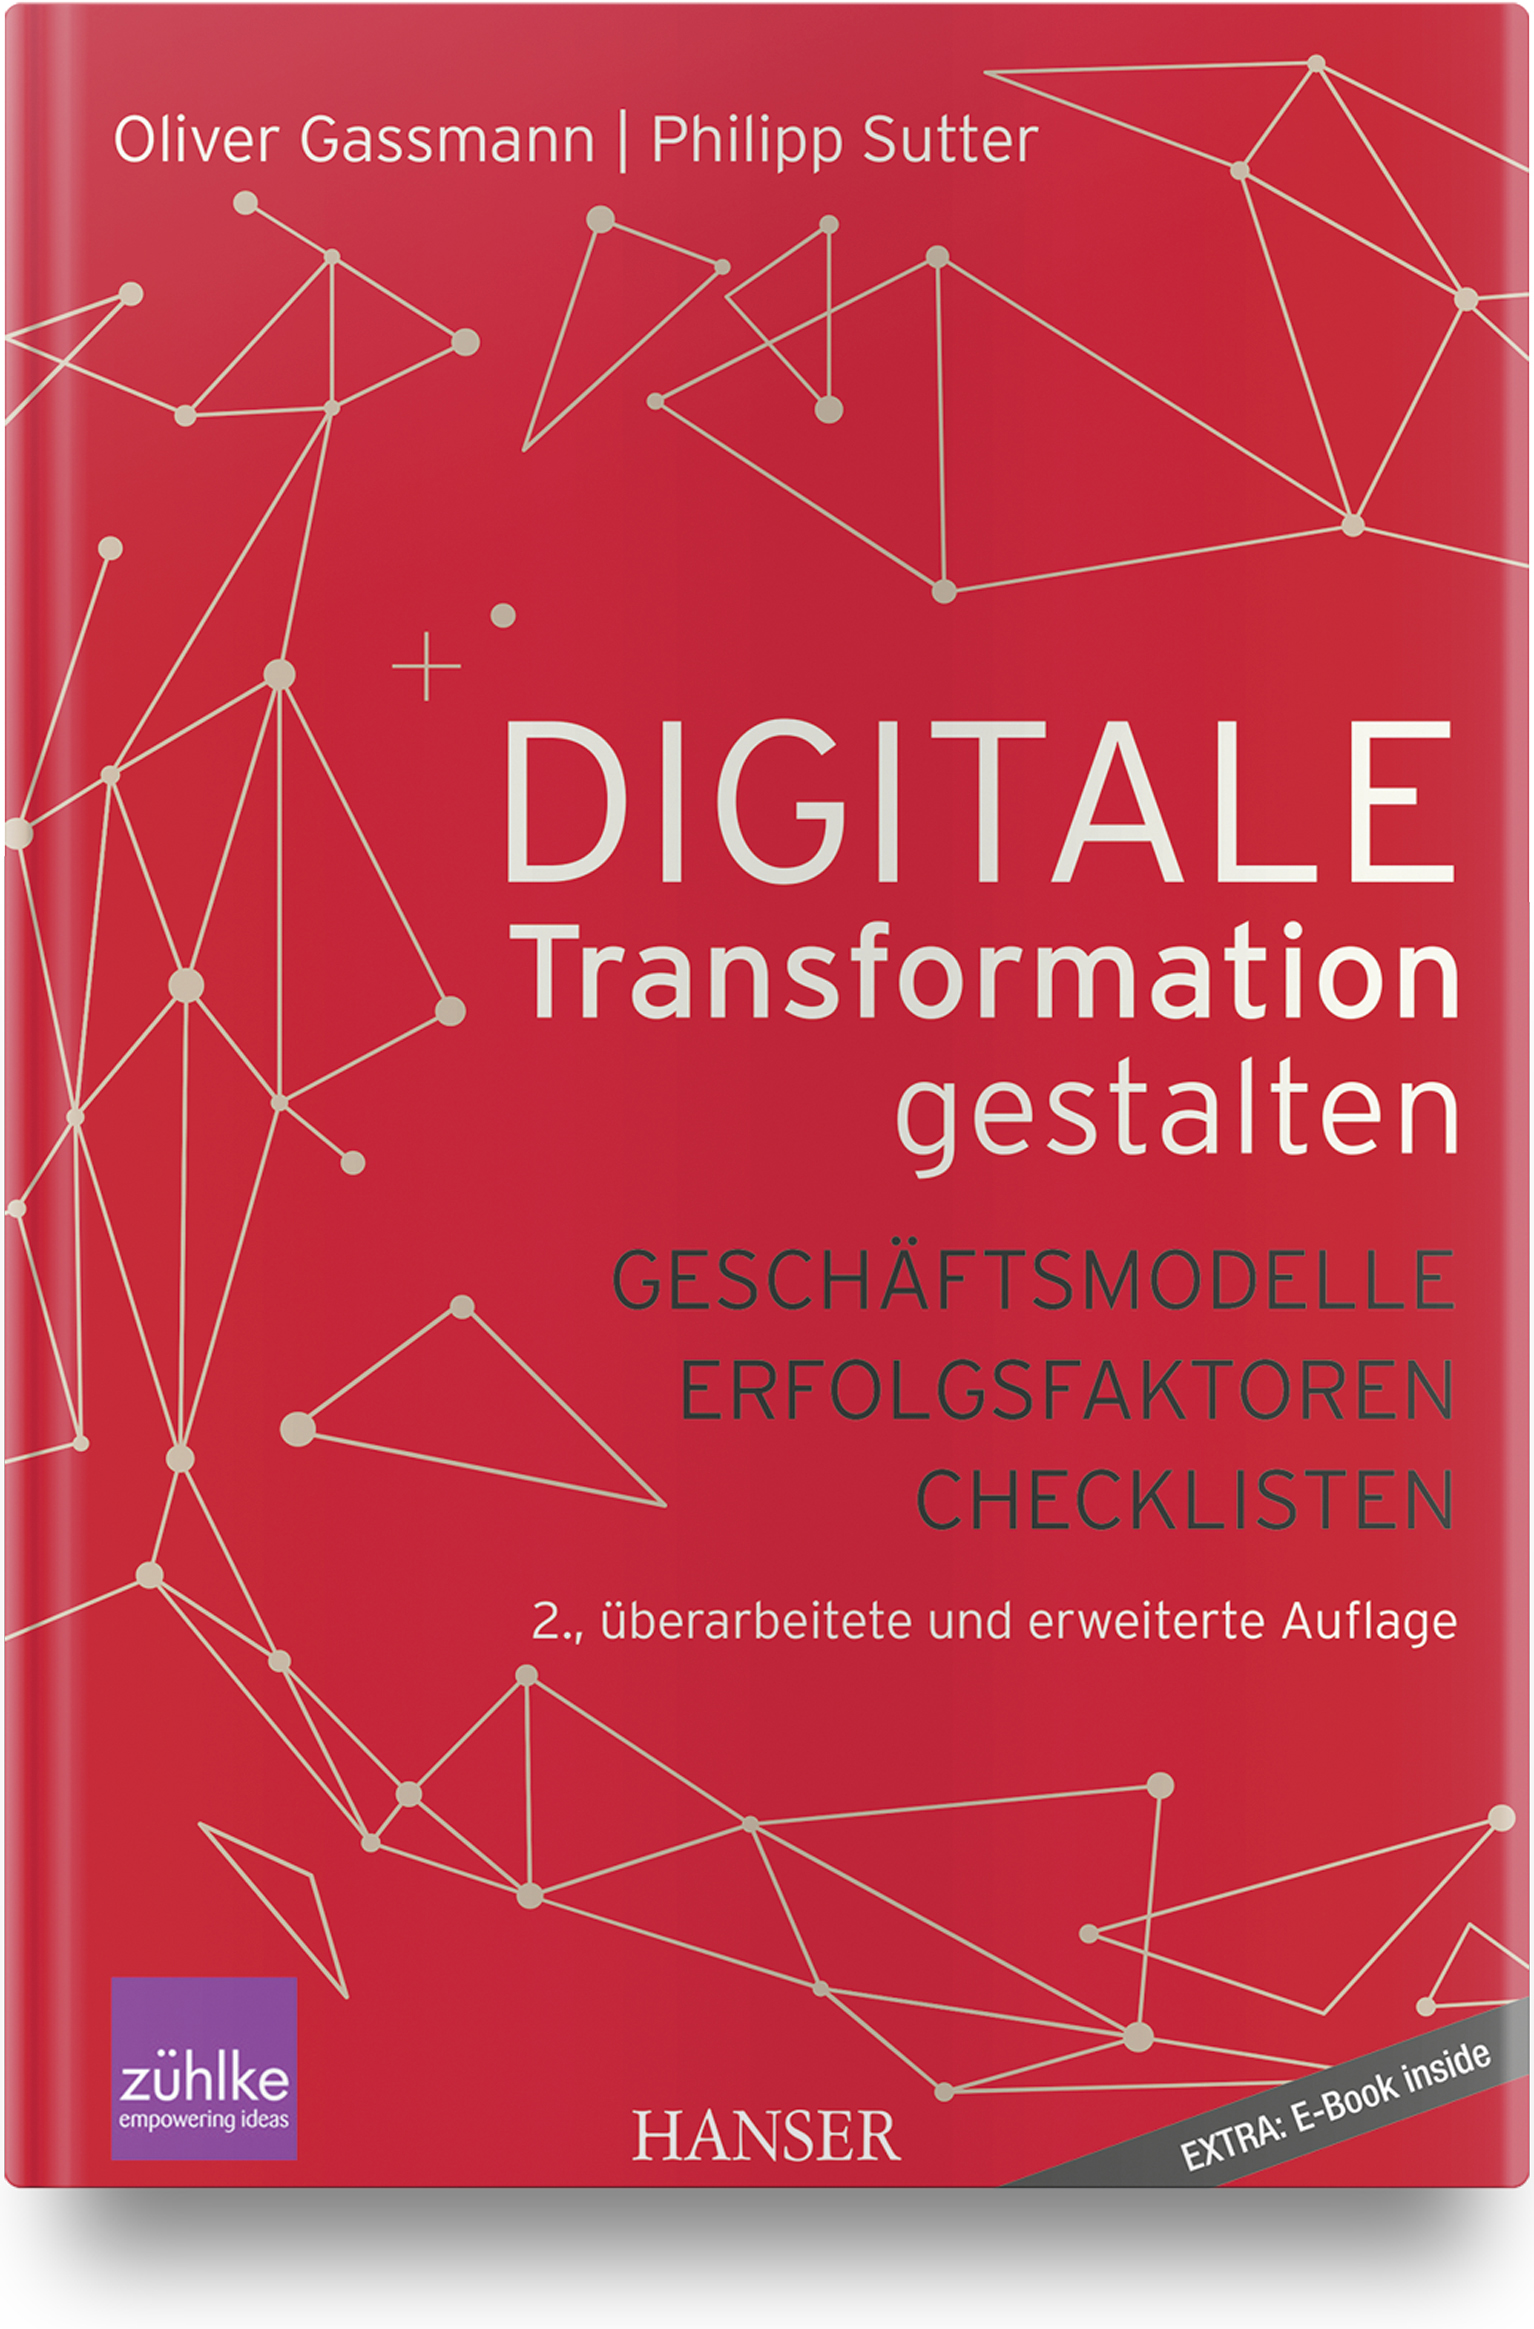 Gassmann, Sutter, Digitale Transformation gestalten, 978-3-446-45868-0